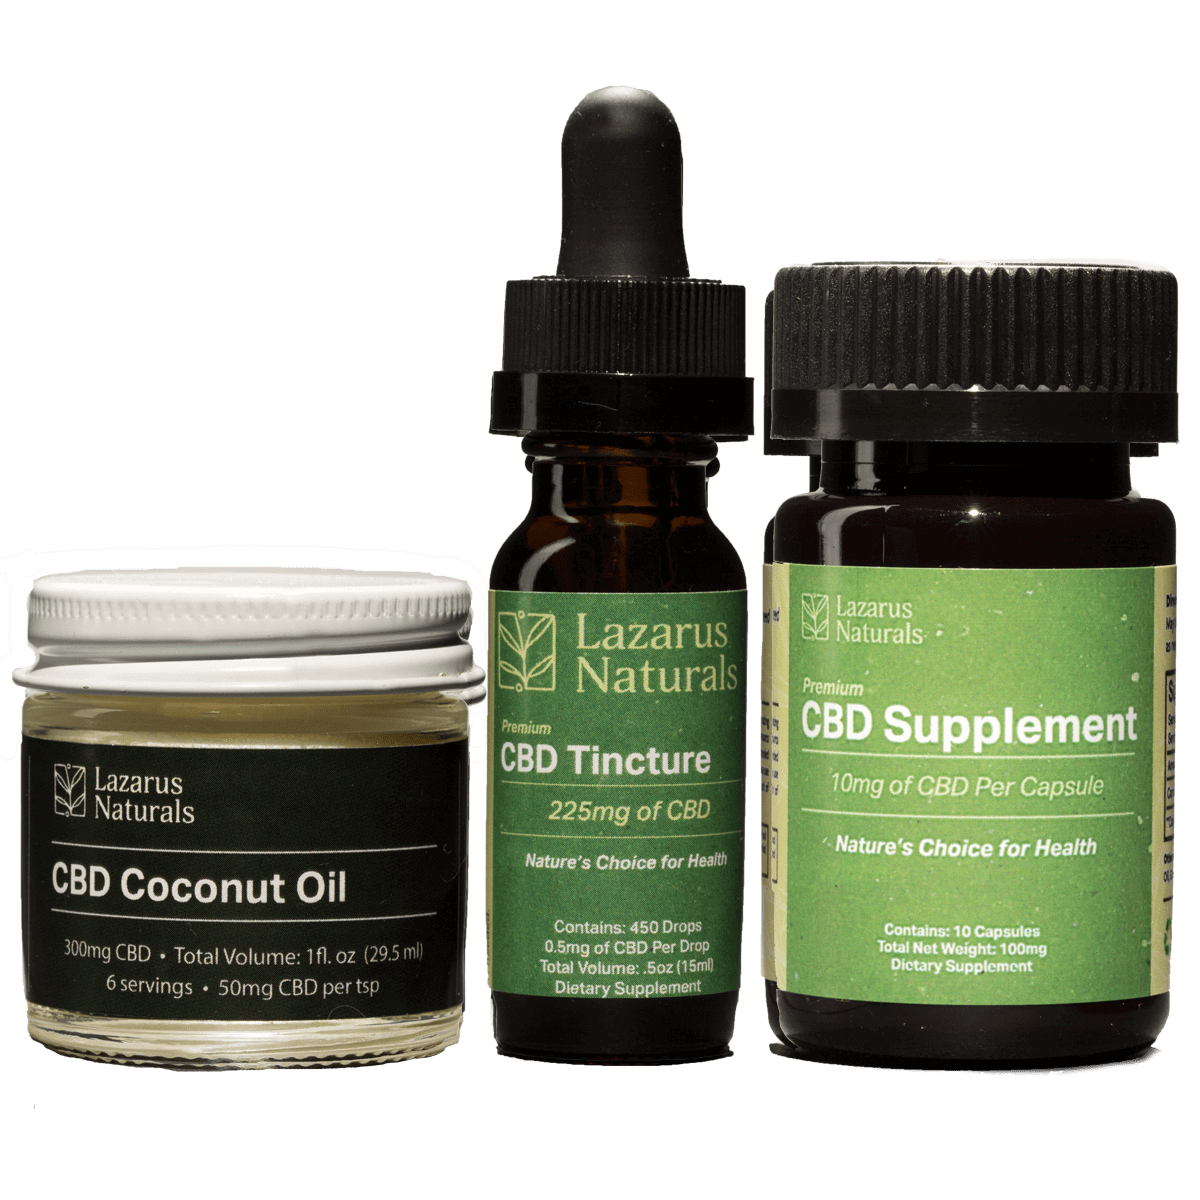 Lazarus Naturals CBD Review [coupon code] | Natural Wellness